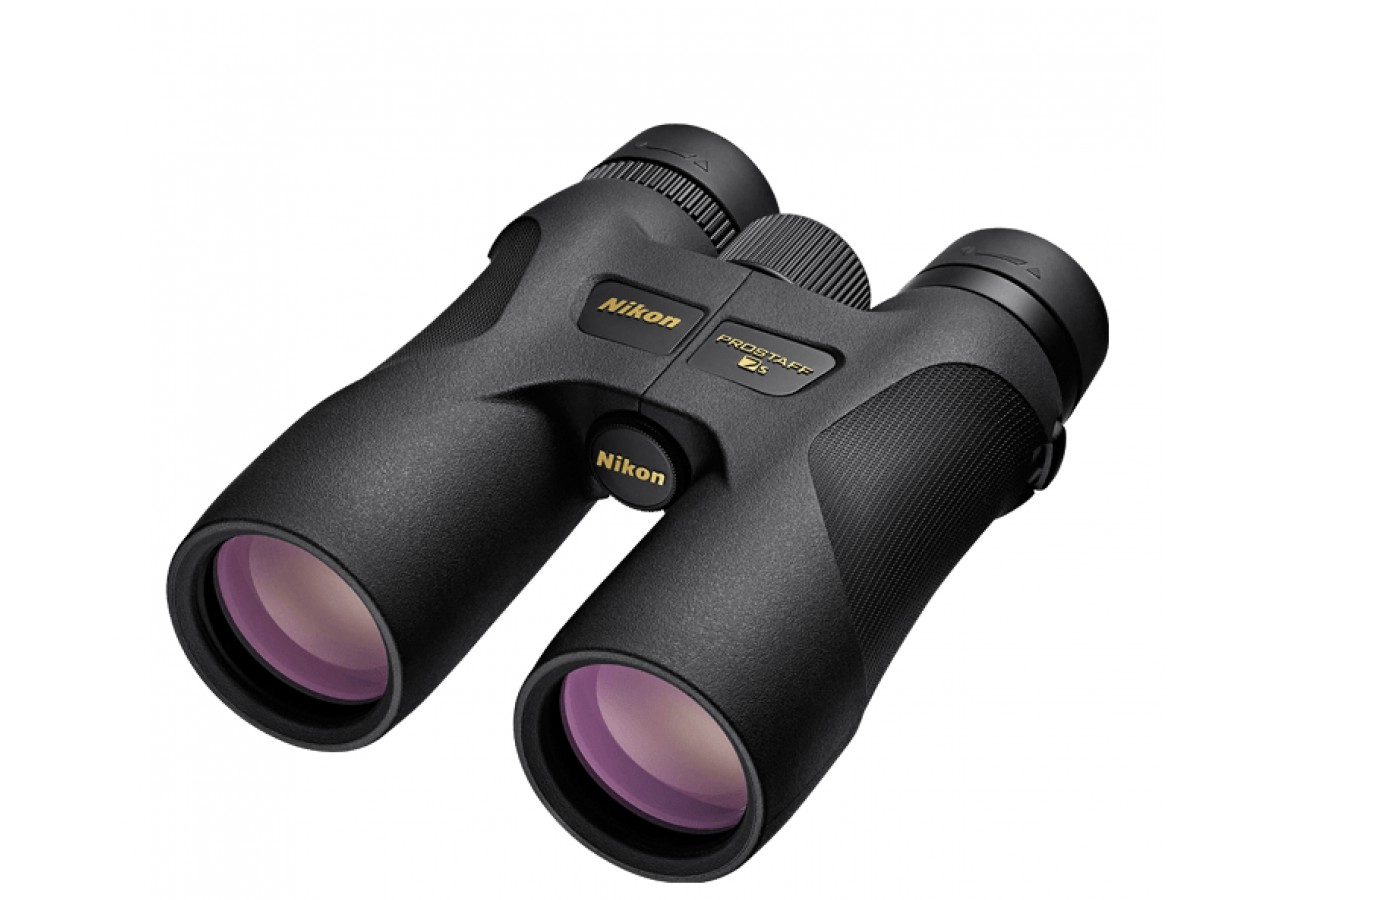 The Nikon ProStaff 7S offers turn and slide rubber eye cups for customization.